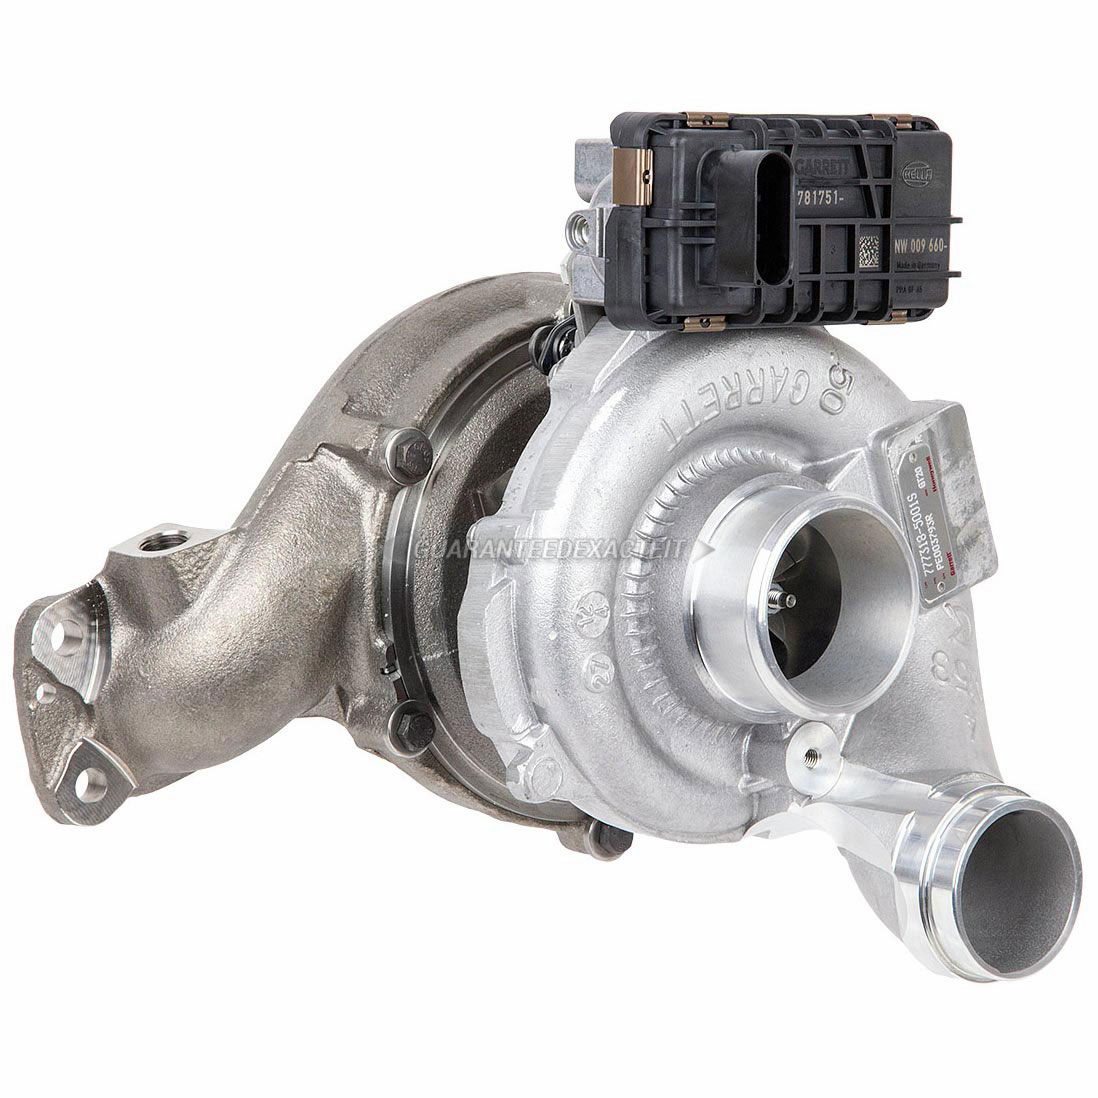 Mercedes_Benz ML320                          TurbochargerTurbocharger